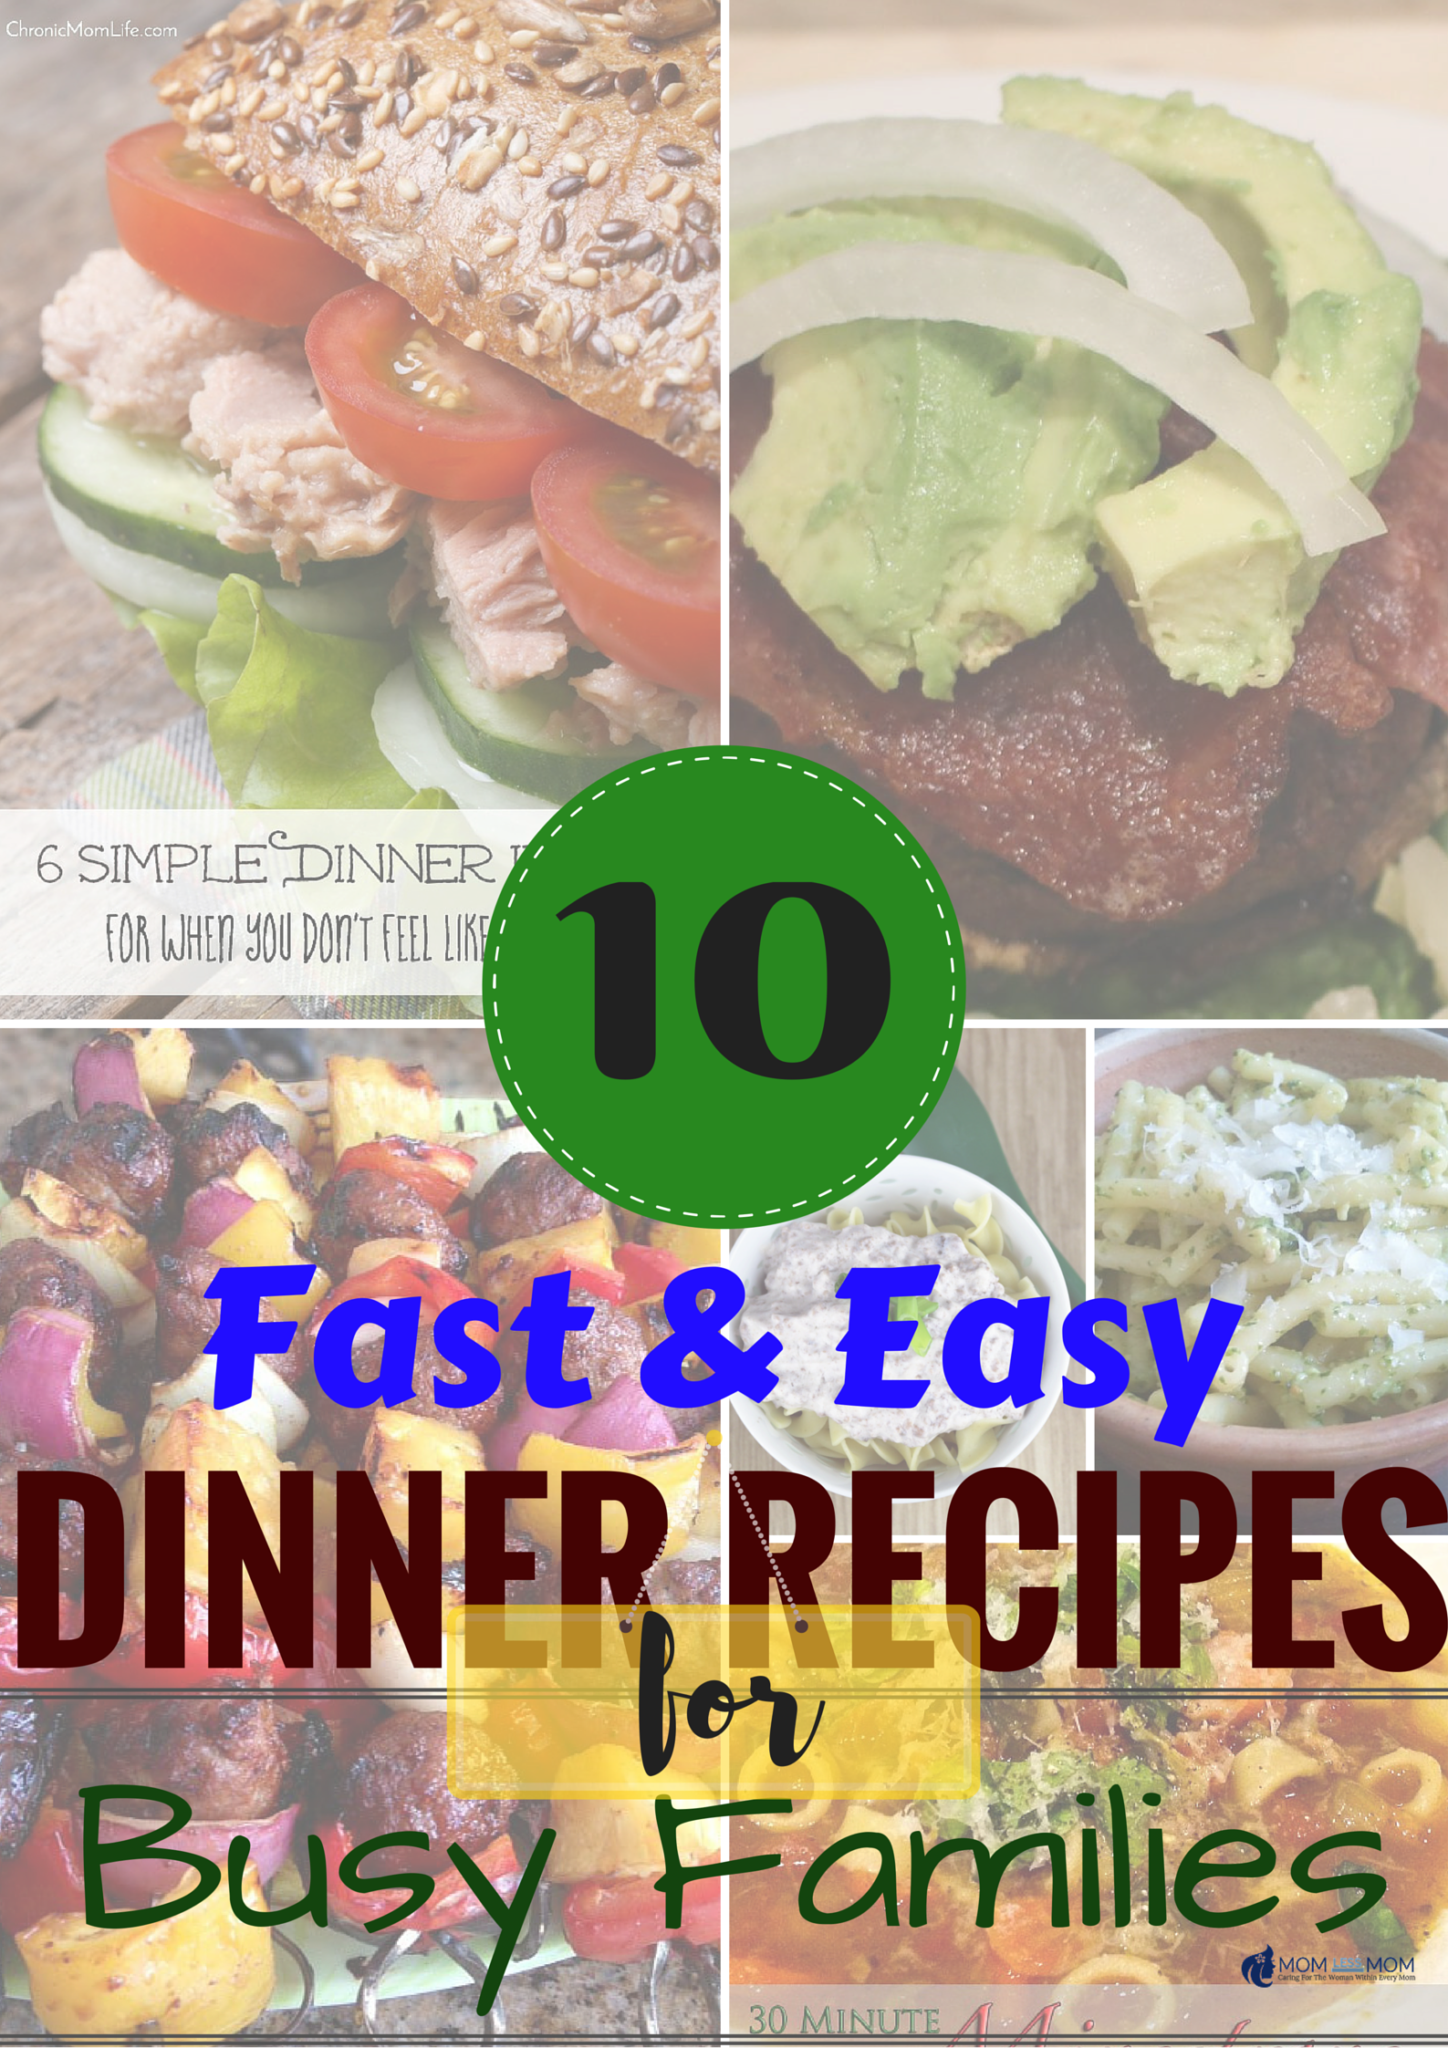 Fast and Easy Dinner Recipes for Busy Families